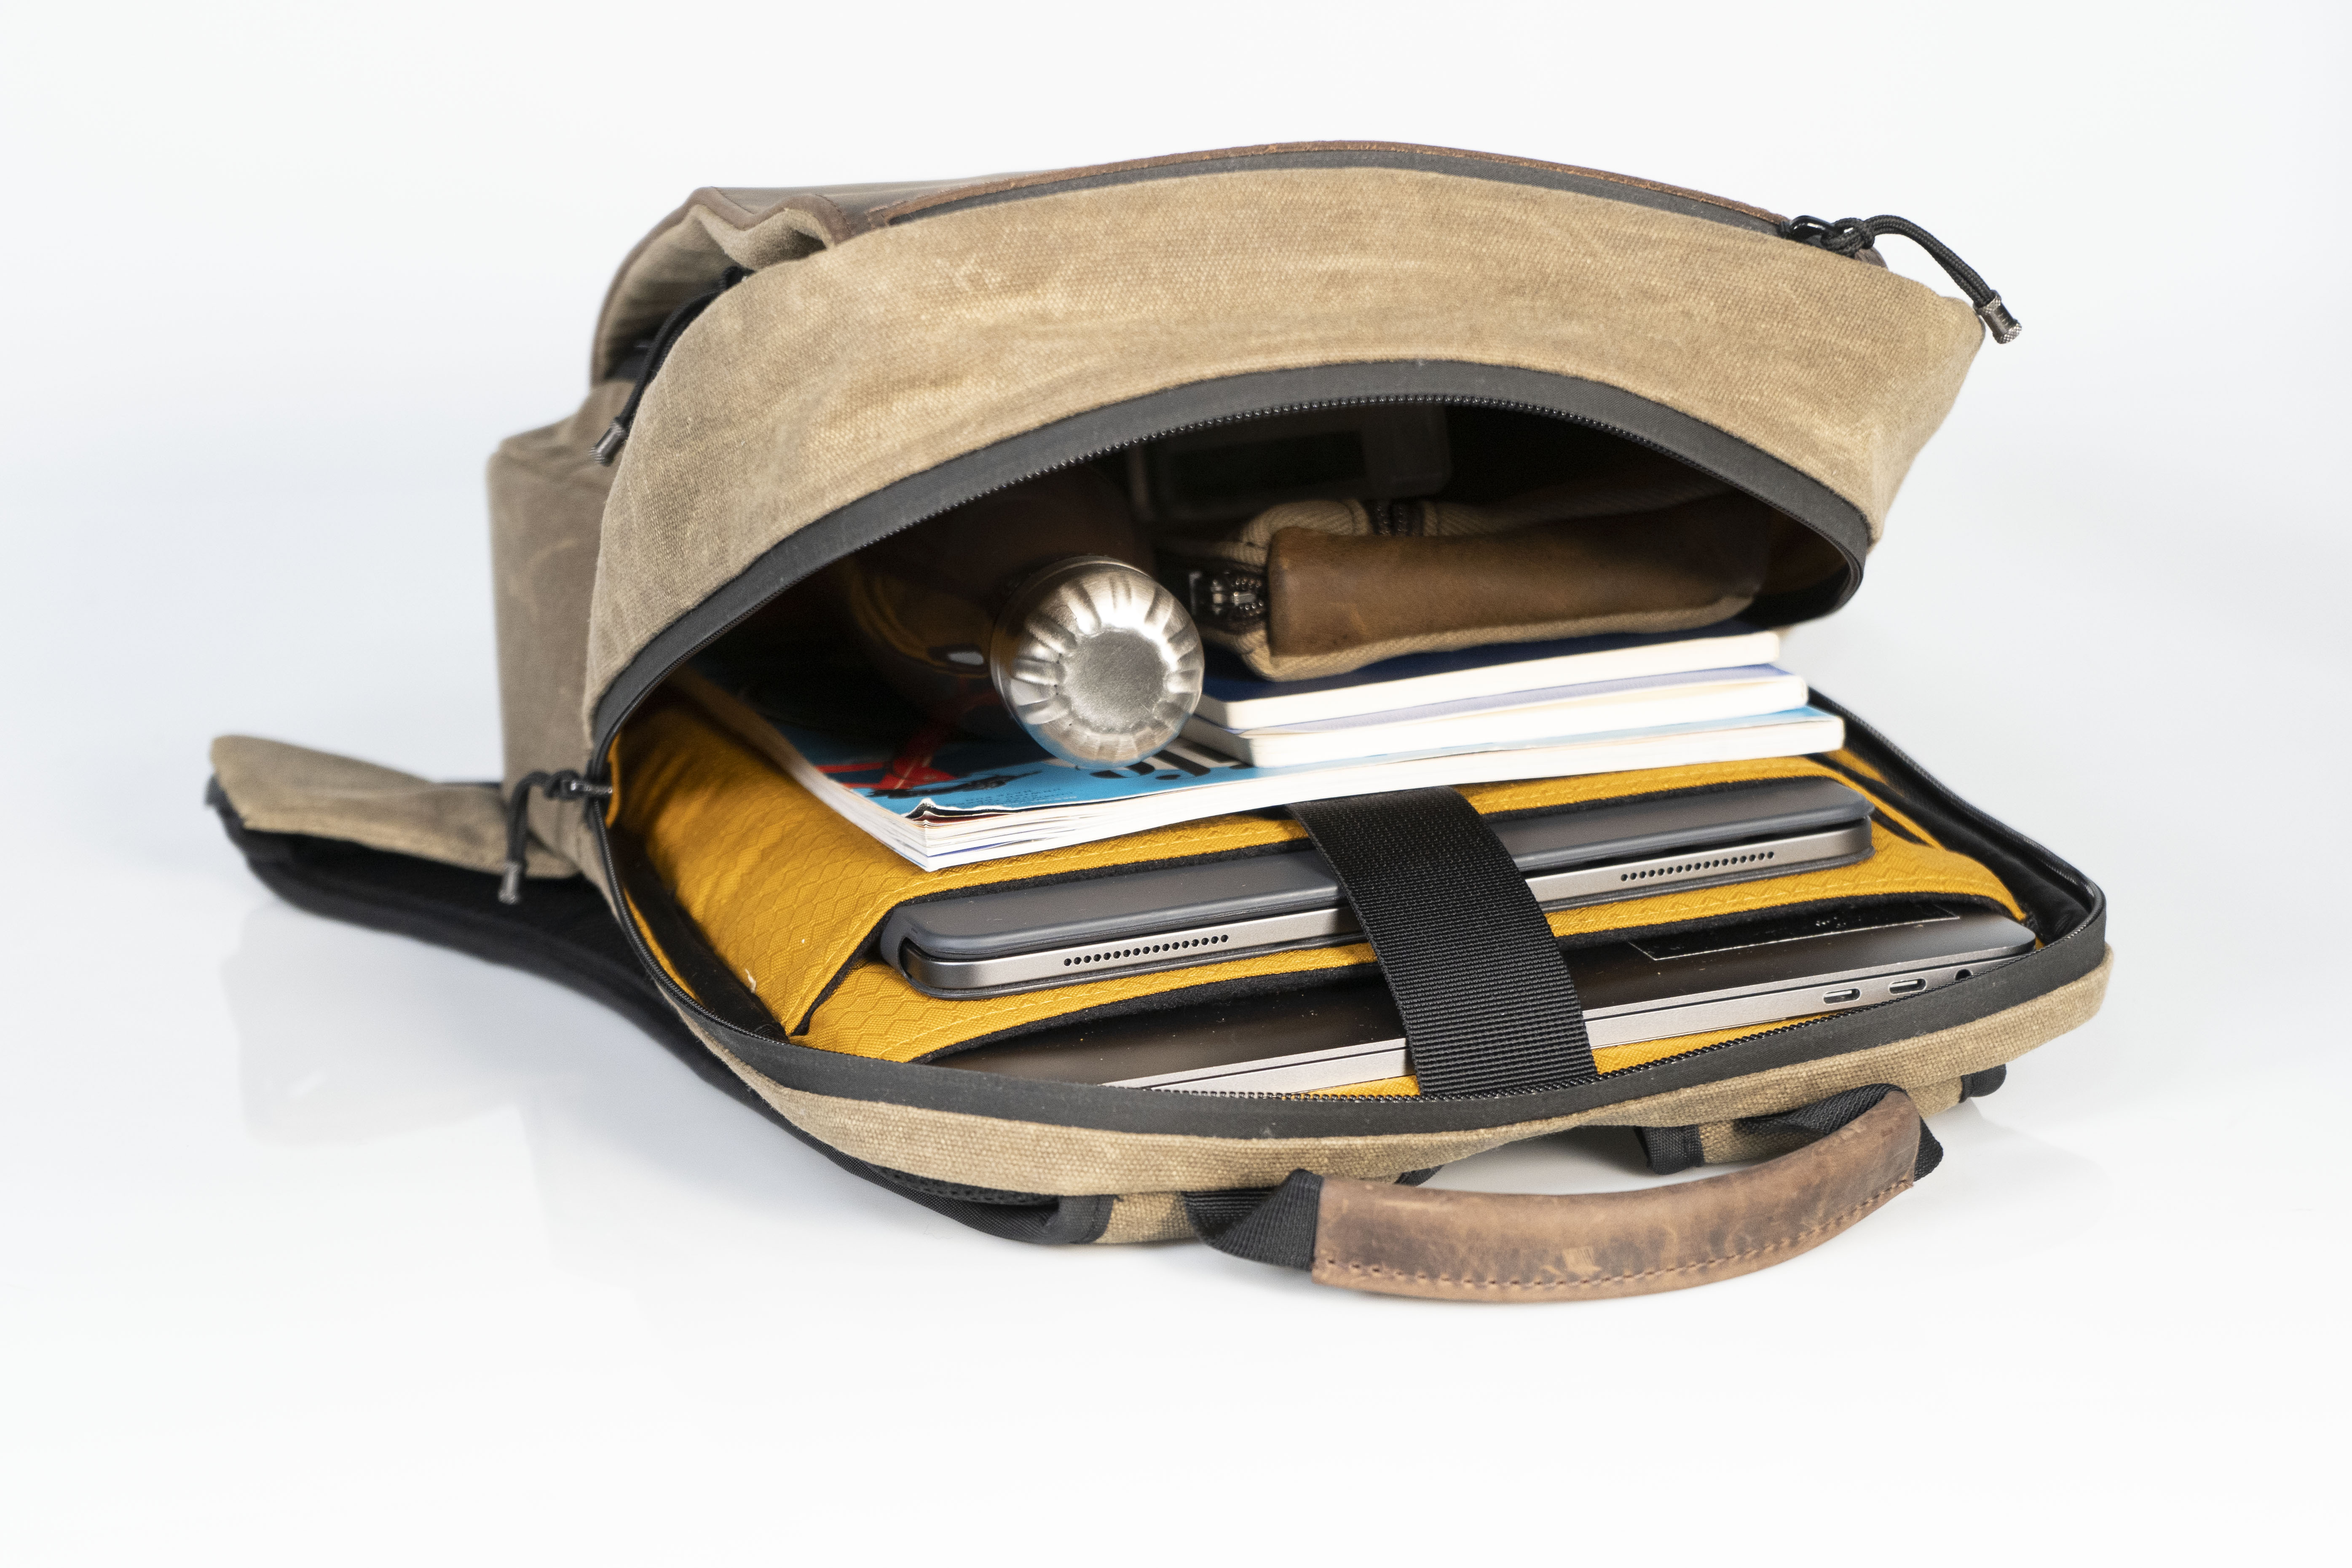 caf4c15c898 Slim backpack hides even the biggest MacBooks and iPads in style ...